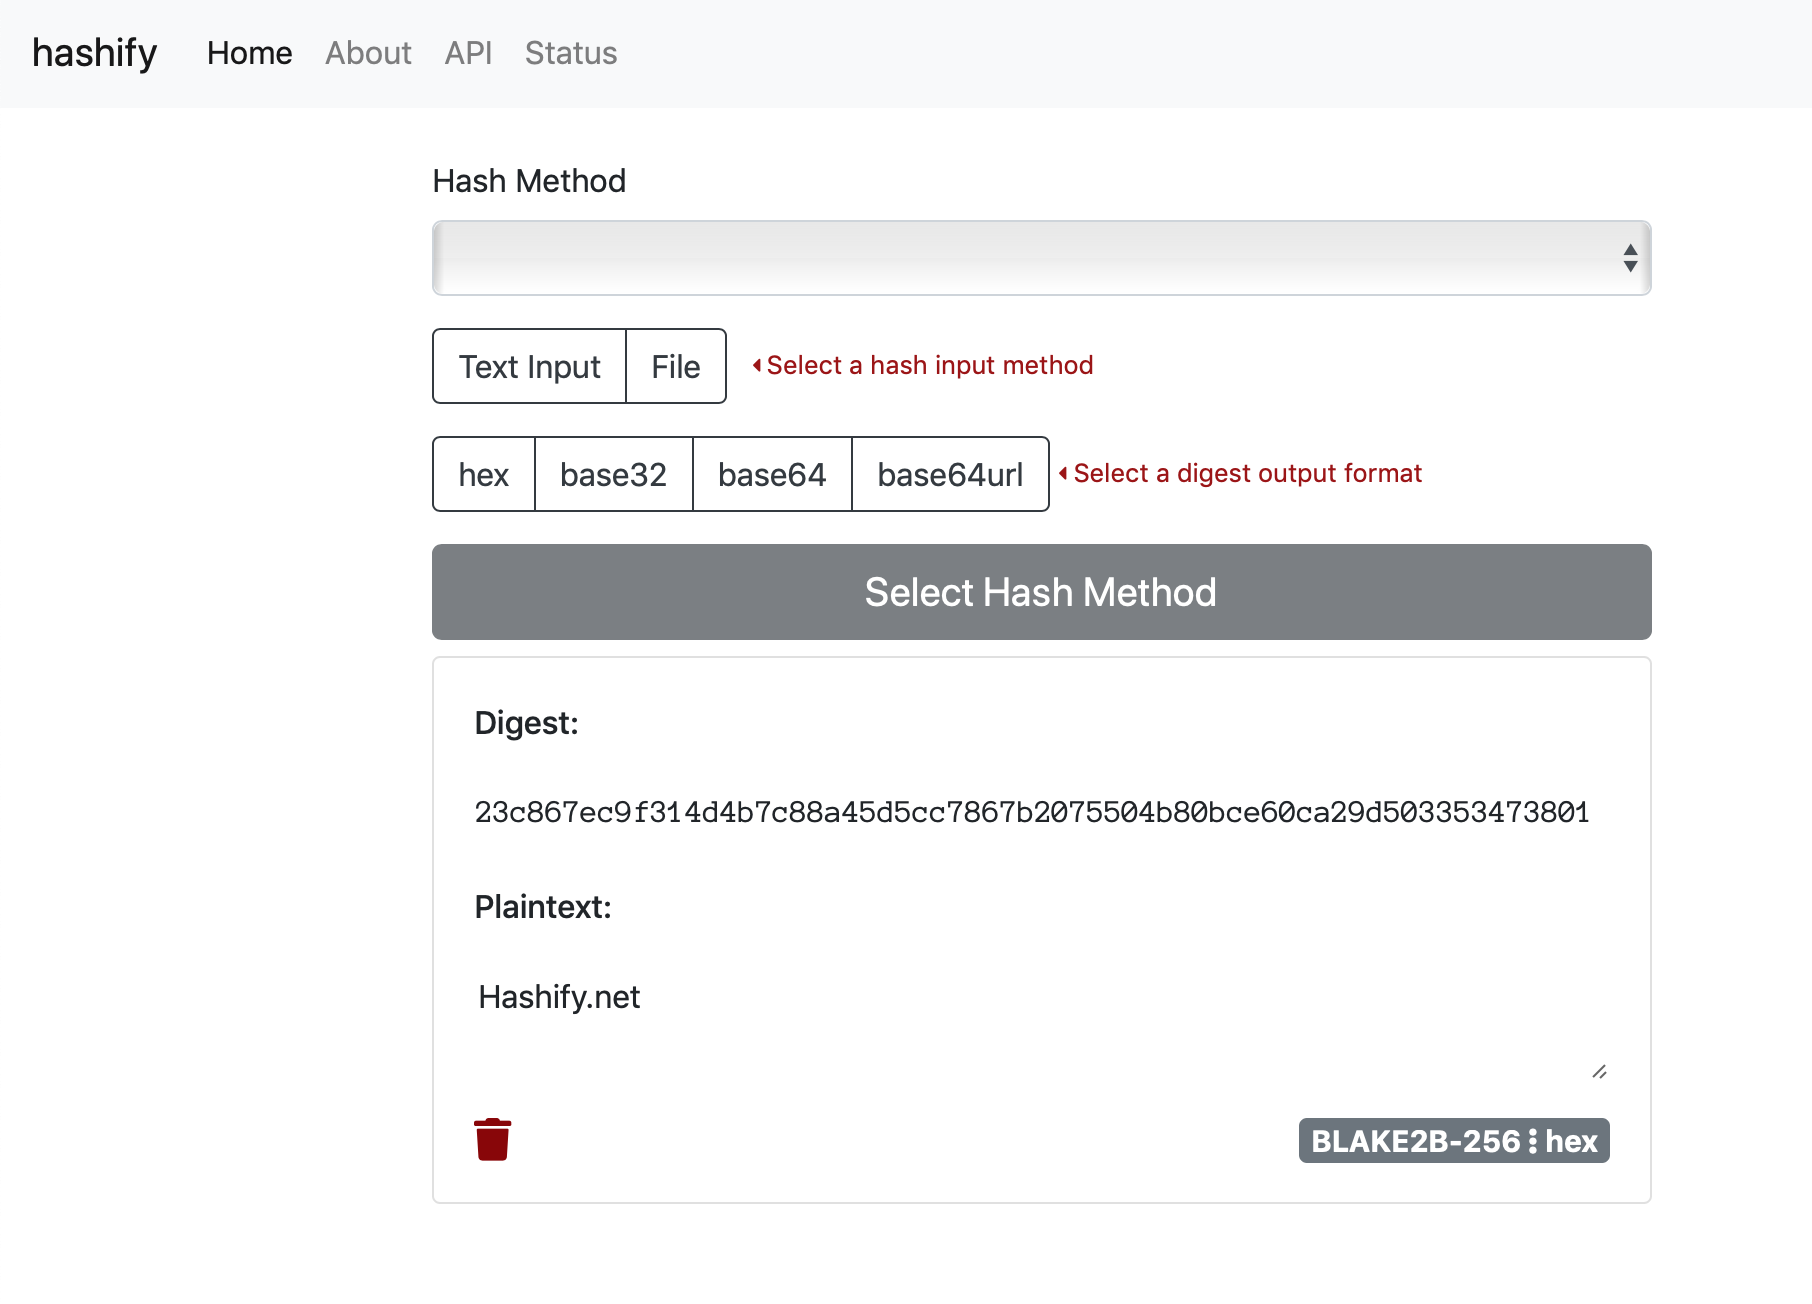 Hashify.net Project Screenshot